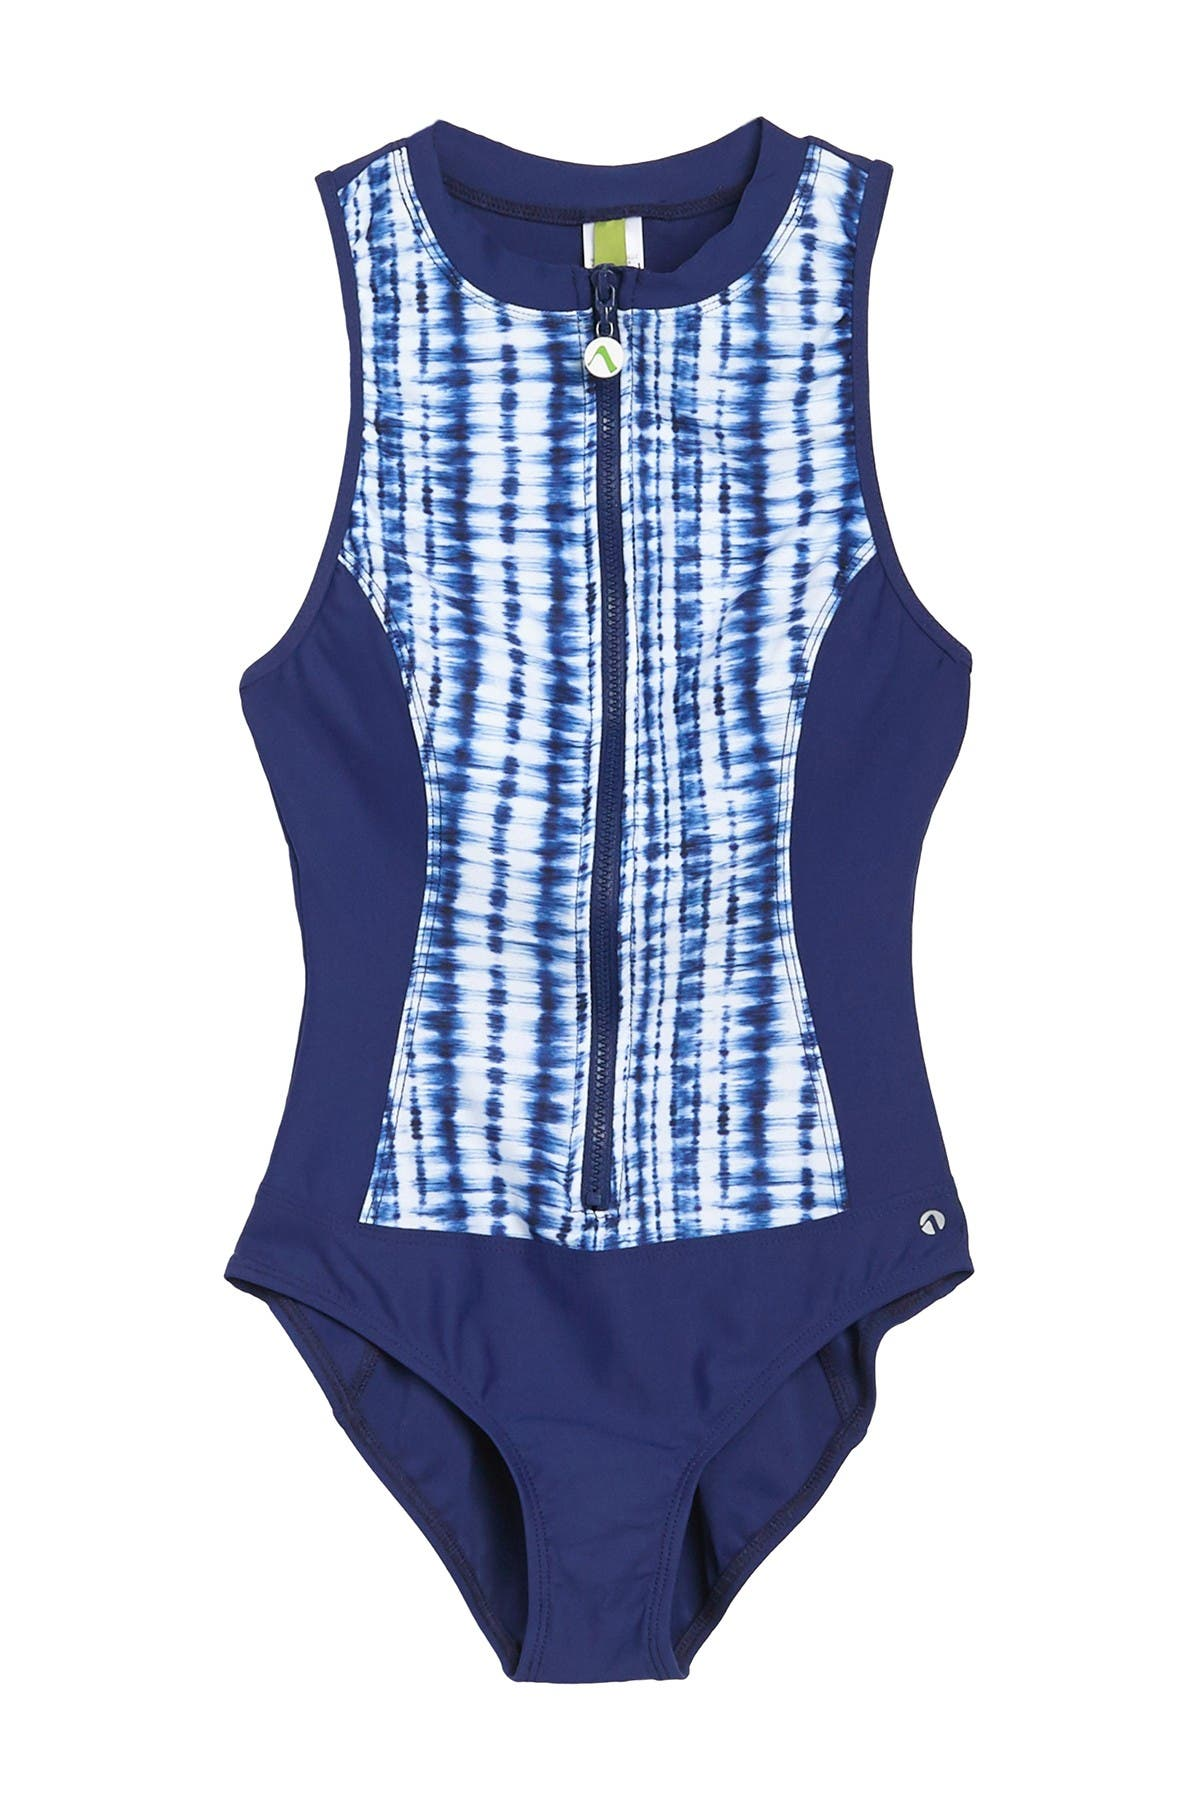 Image of NEXT Retrograde Zip One-Piece Swimsuit